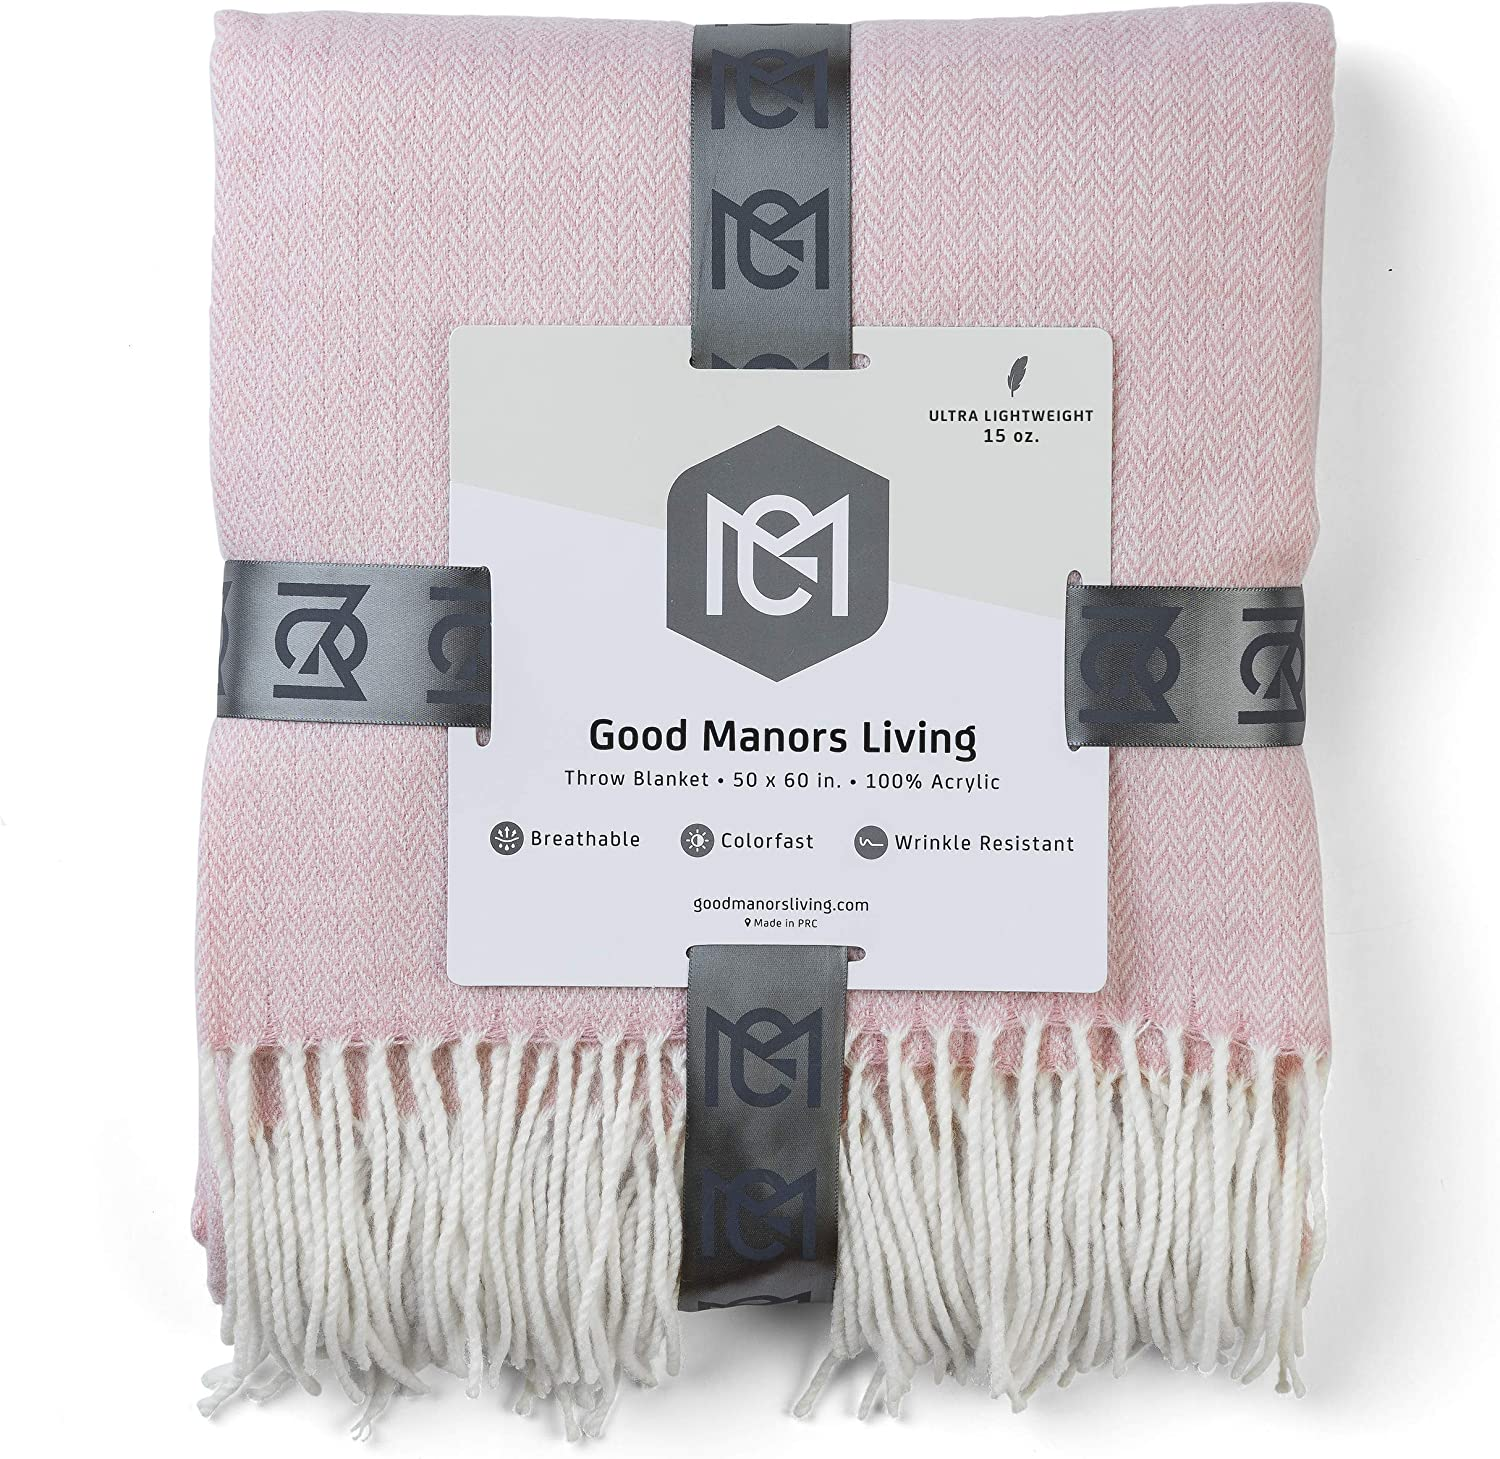 """GOOD MANORS Herringbone Throw Blanket, Modern Farmhouse Decor for Couch, Chair, Ladder, Indoor-Outdoor Everyday Use, Soft Faux Cashmere, Ultra Lightweight, 50"""" x 60"""", Light Pink and White"""